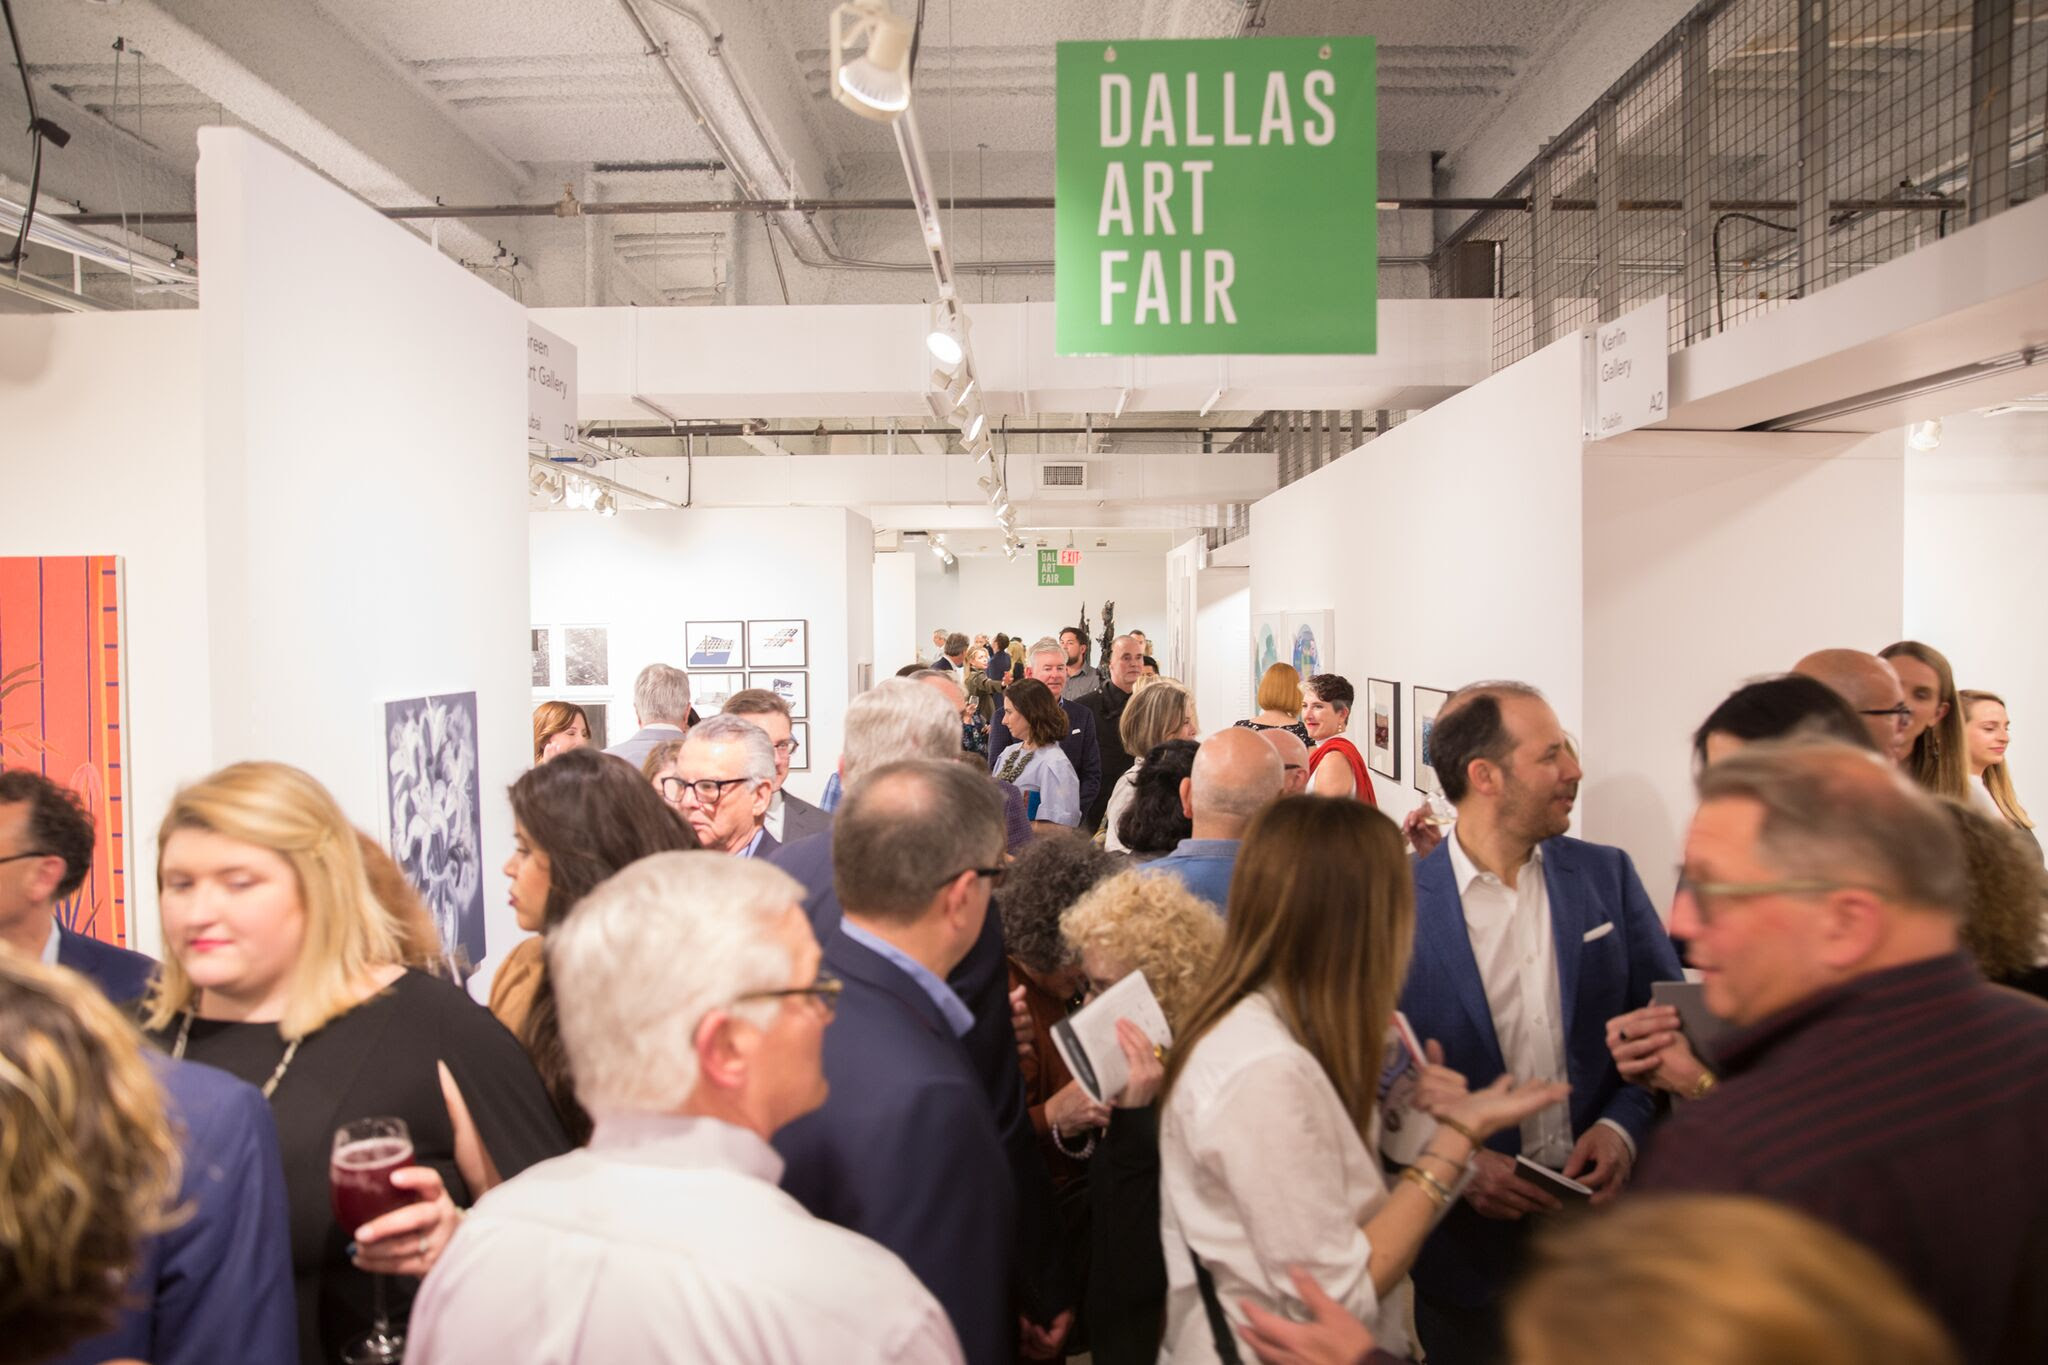 Dallas Art Fair Names Exhibitors for Spring 2019